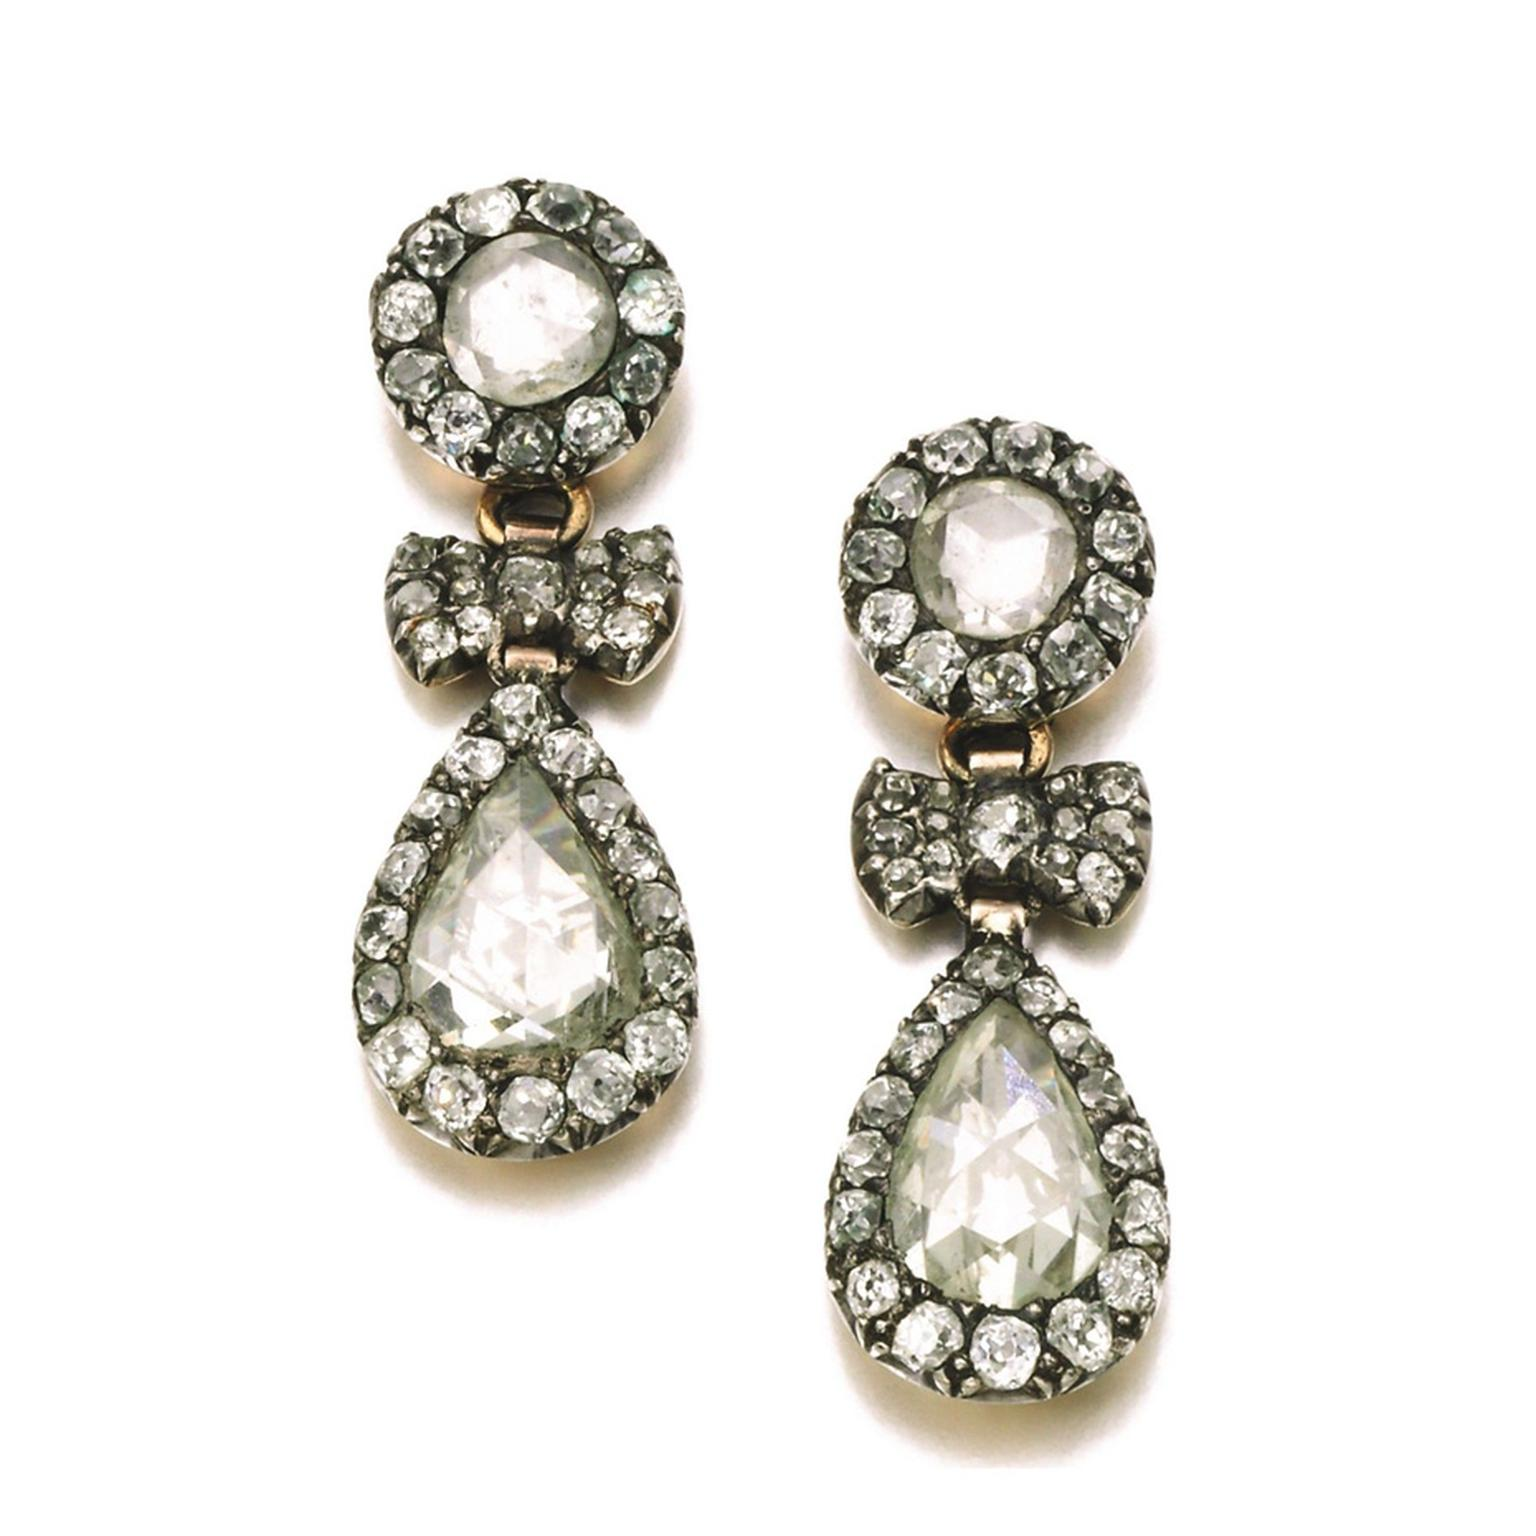 These late 18th century diamond pendant earrings sold for £41,250 at Sotheby's London in 2014.